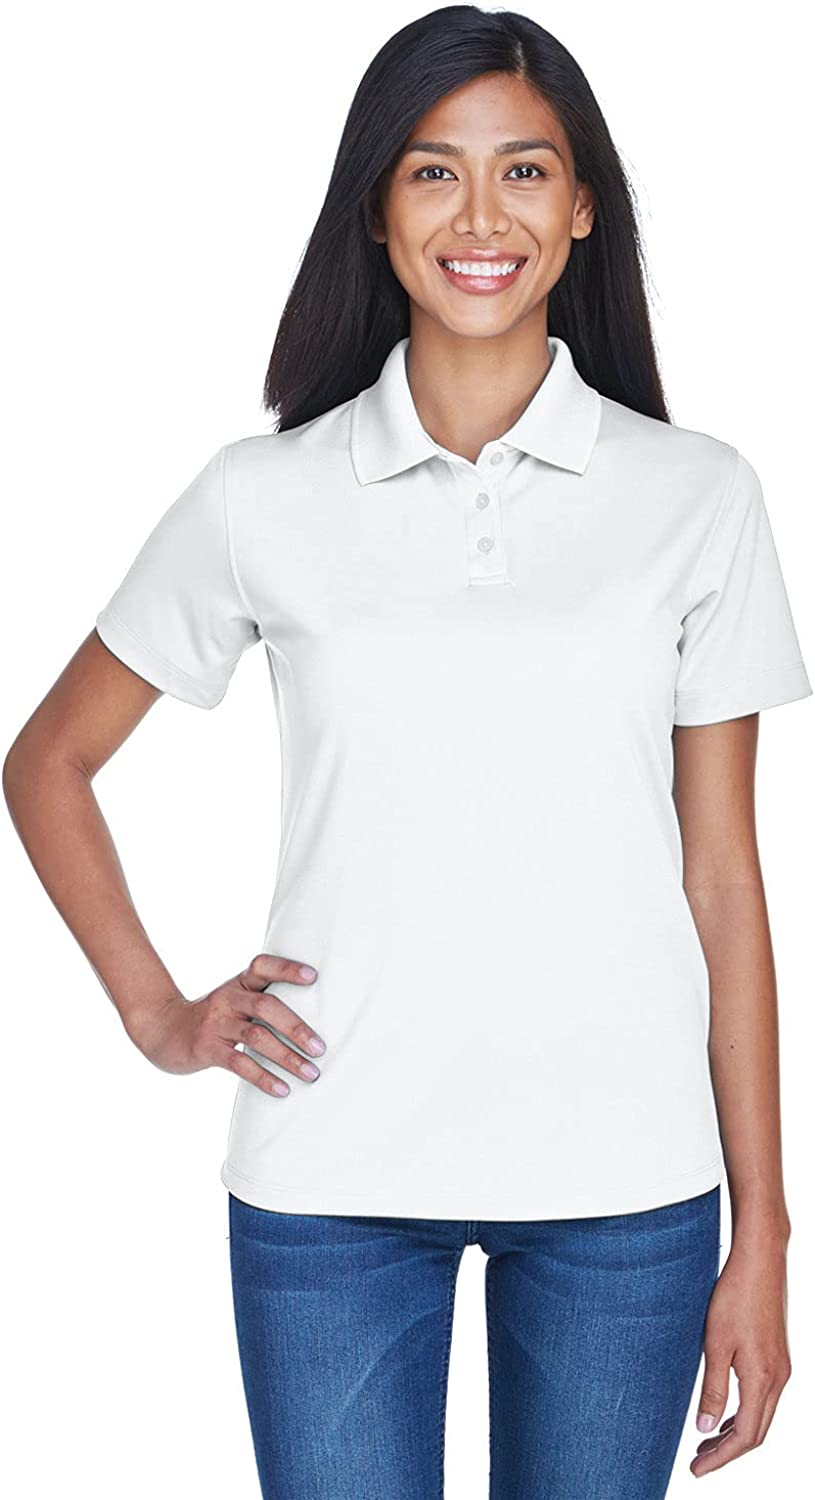 UltraClub Womens Cool & Dry Stain-Release Performance Polo (8445L) -WHITE -2XL